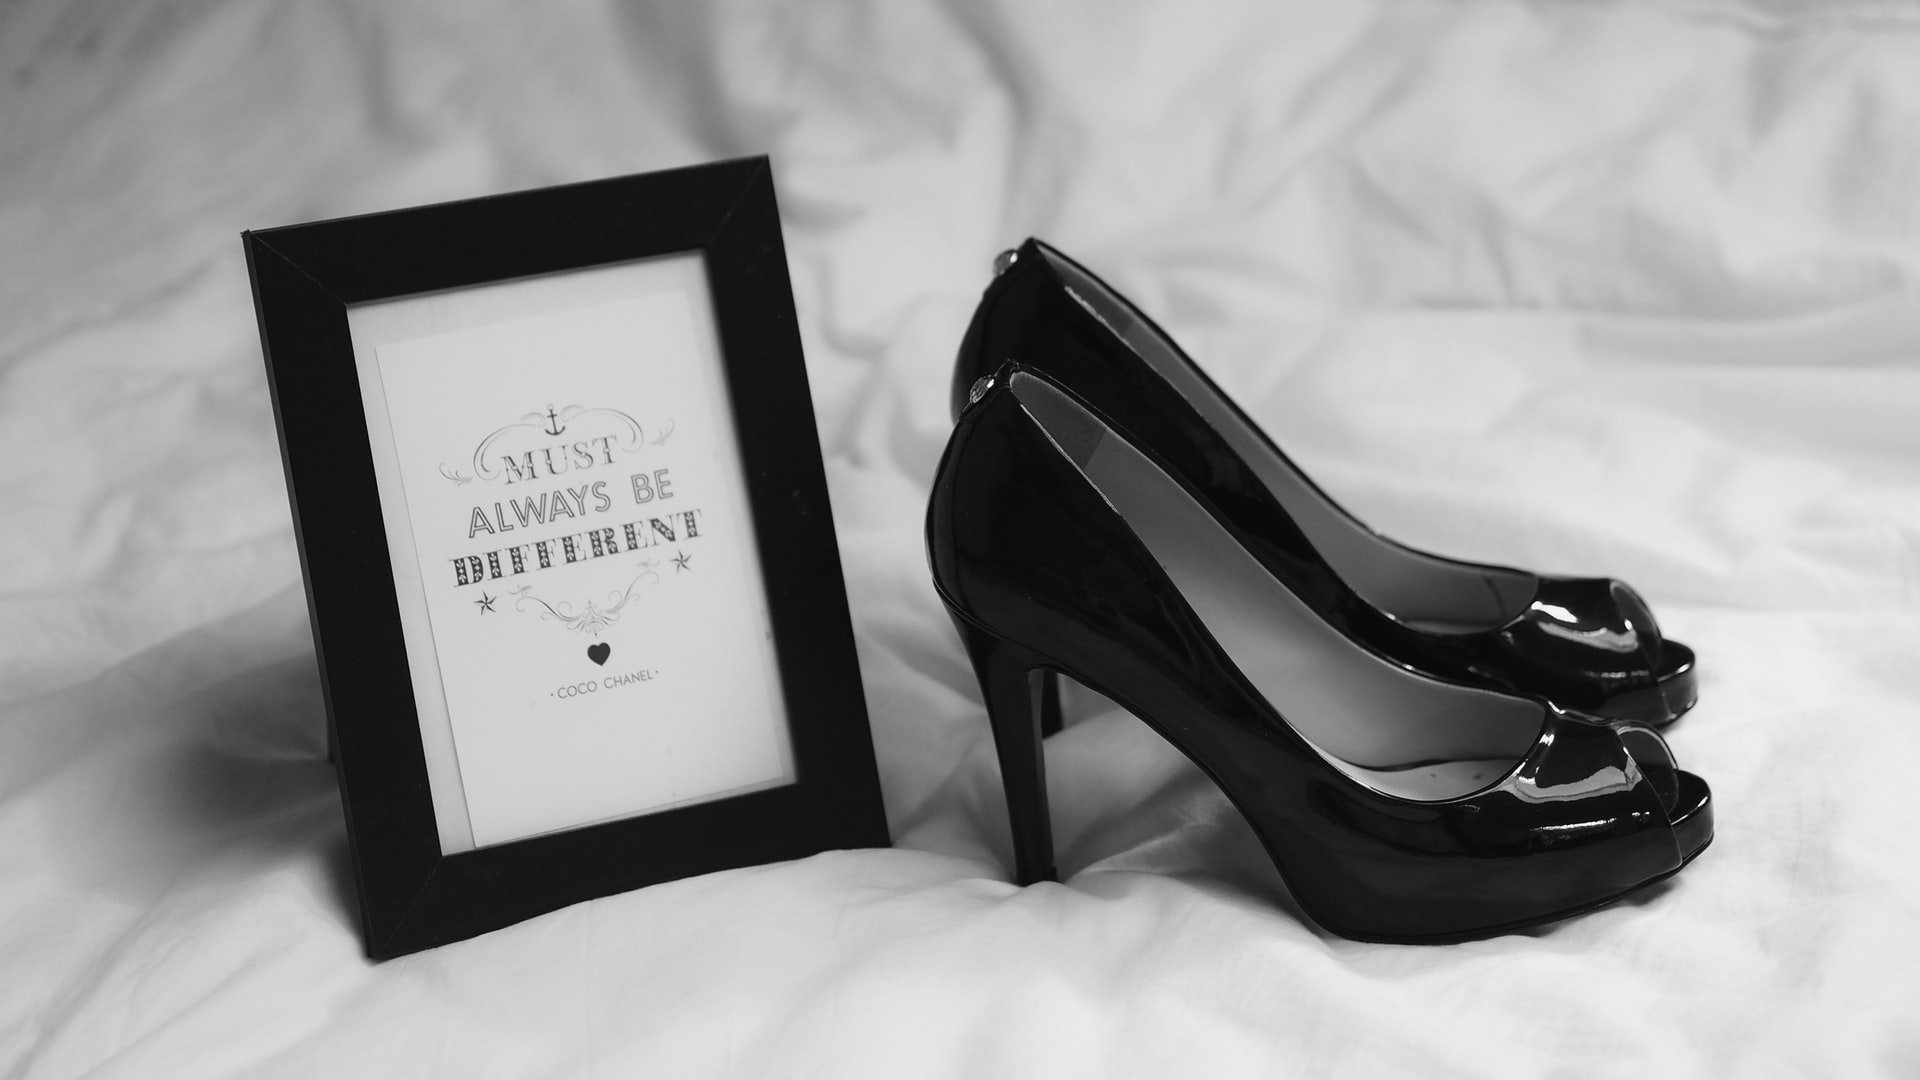 Garrett got her shoes, although he knew she couldn't afford anything there.   Source: Unsplash